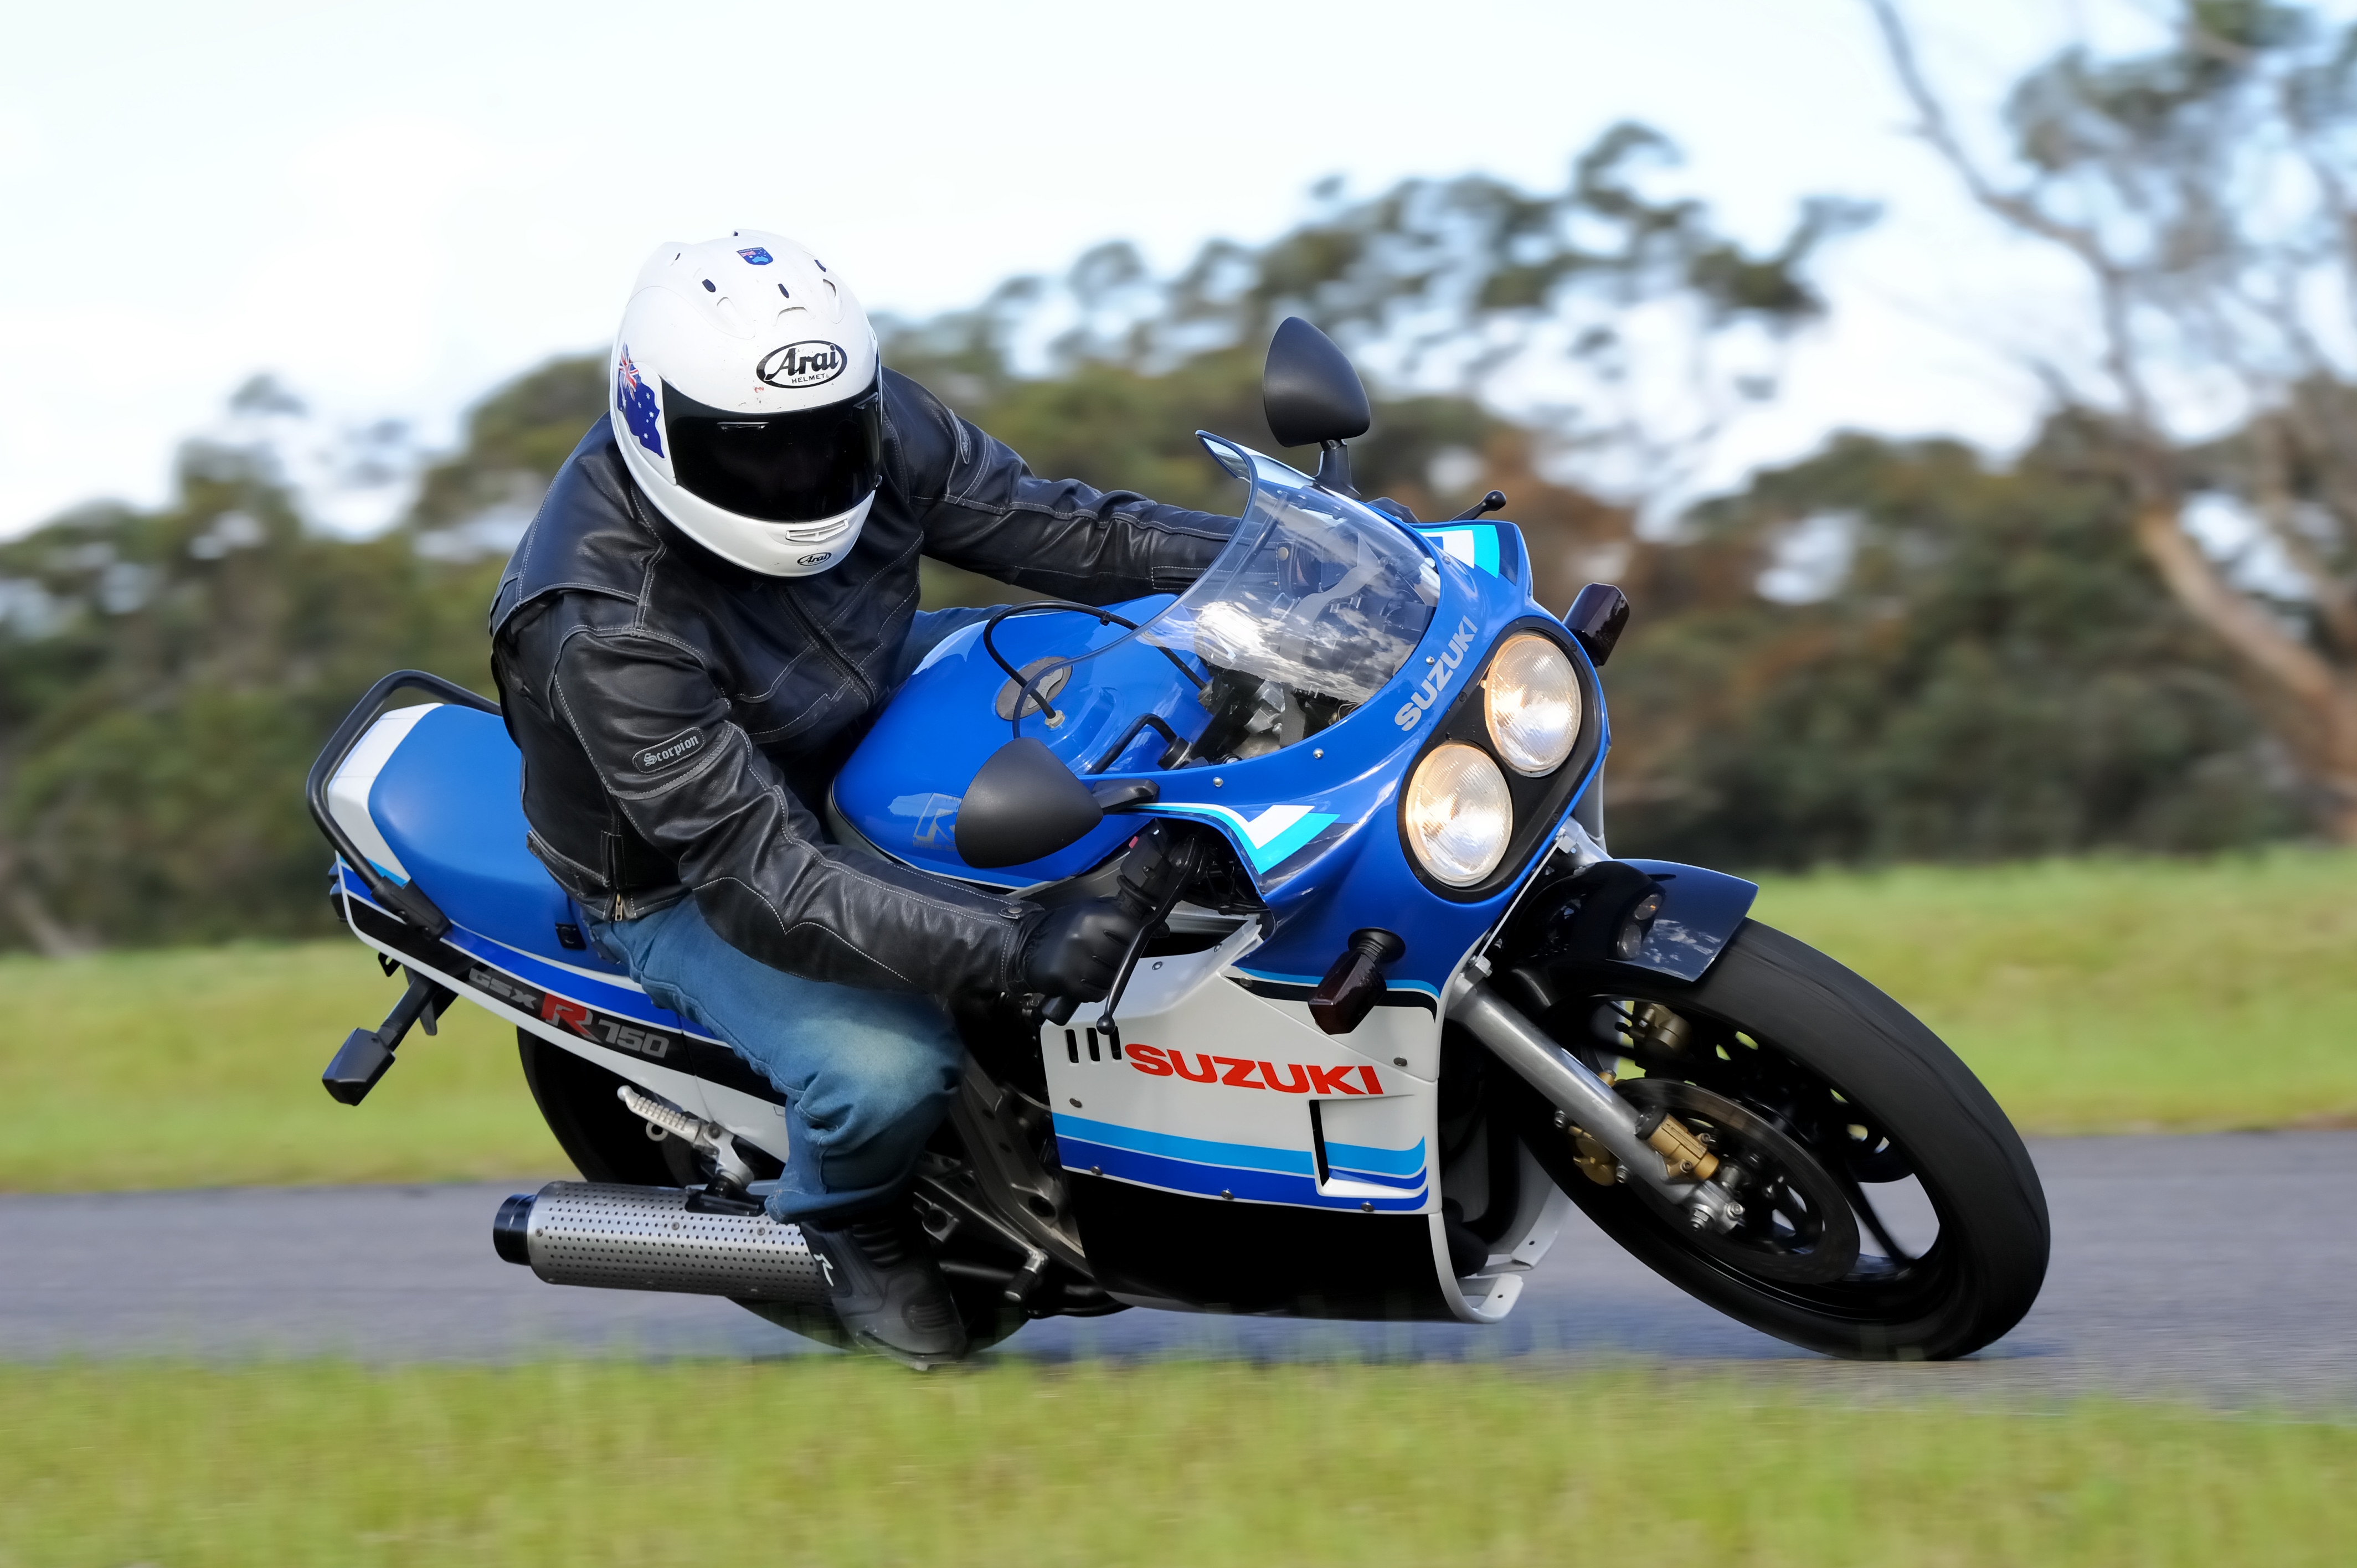 Review: Suzuki GSX-R750 Old vs New - Bike Review